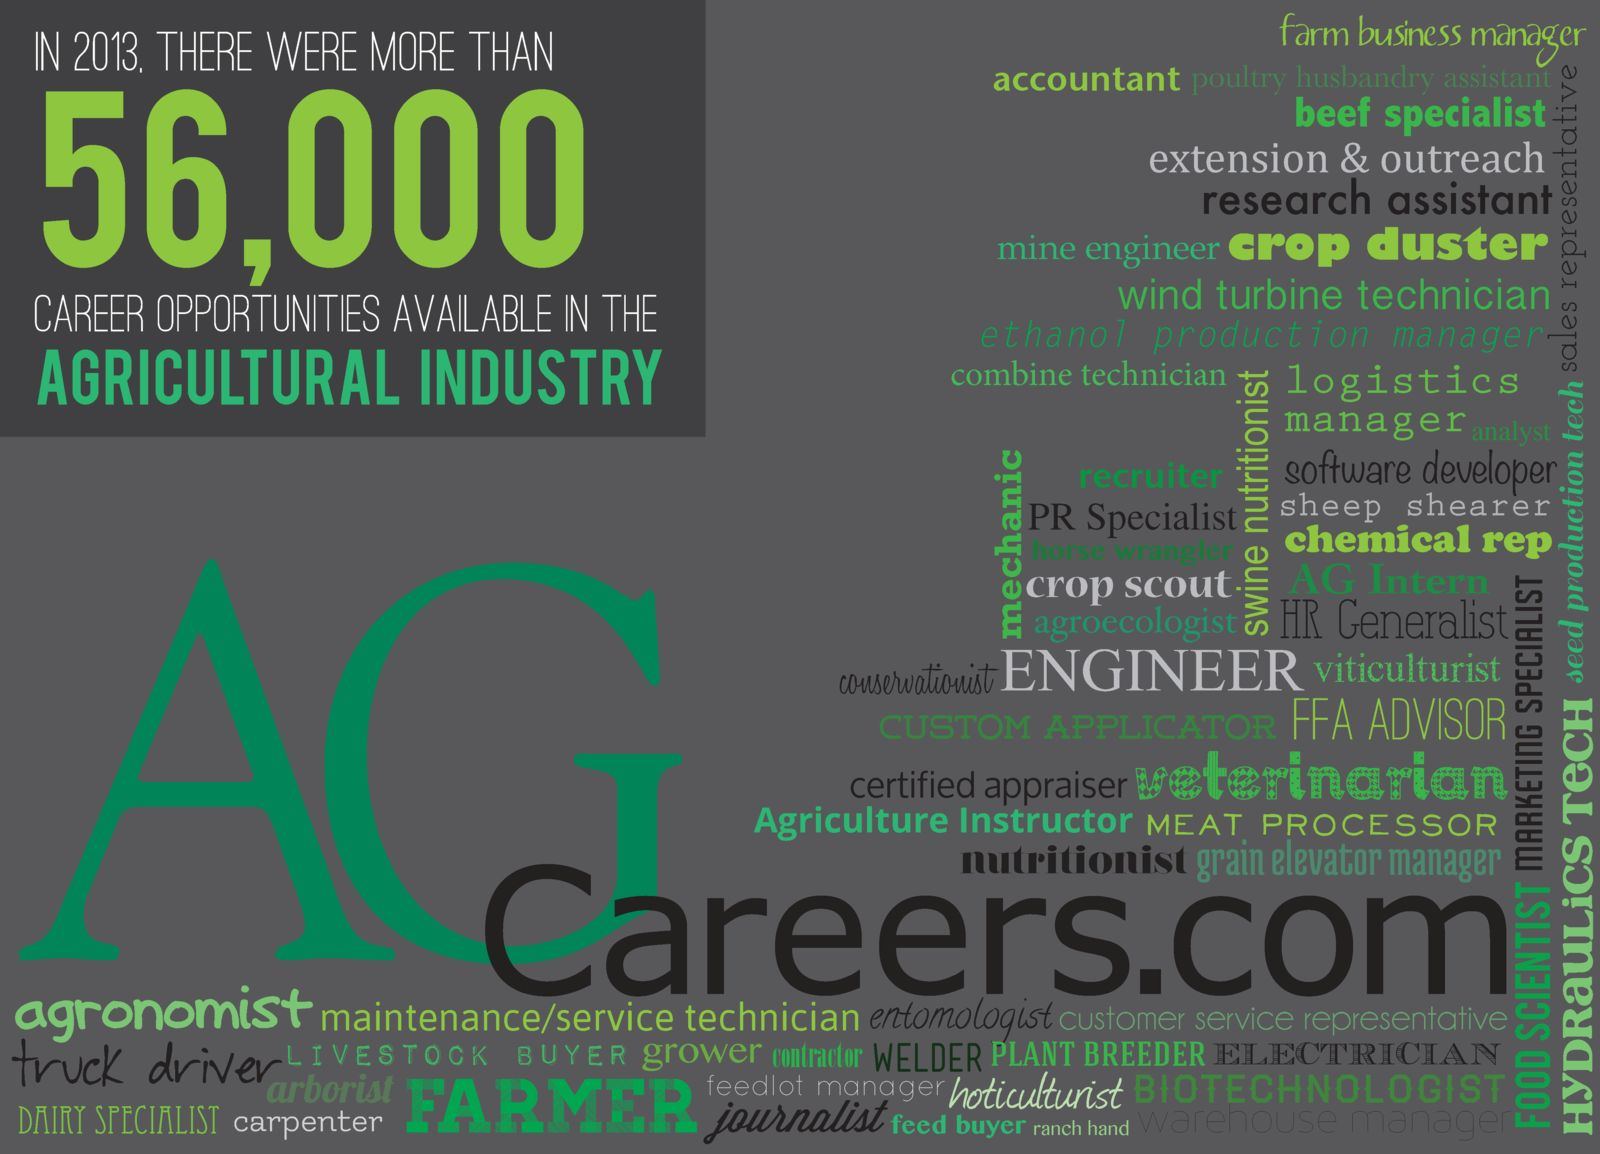 defining agriculture careers com don t let a misrepresented definition define our industry if you are looking for support that there are thousands of career opportunities available in